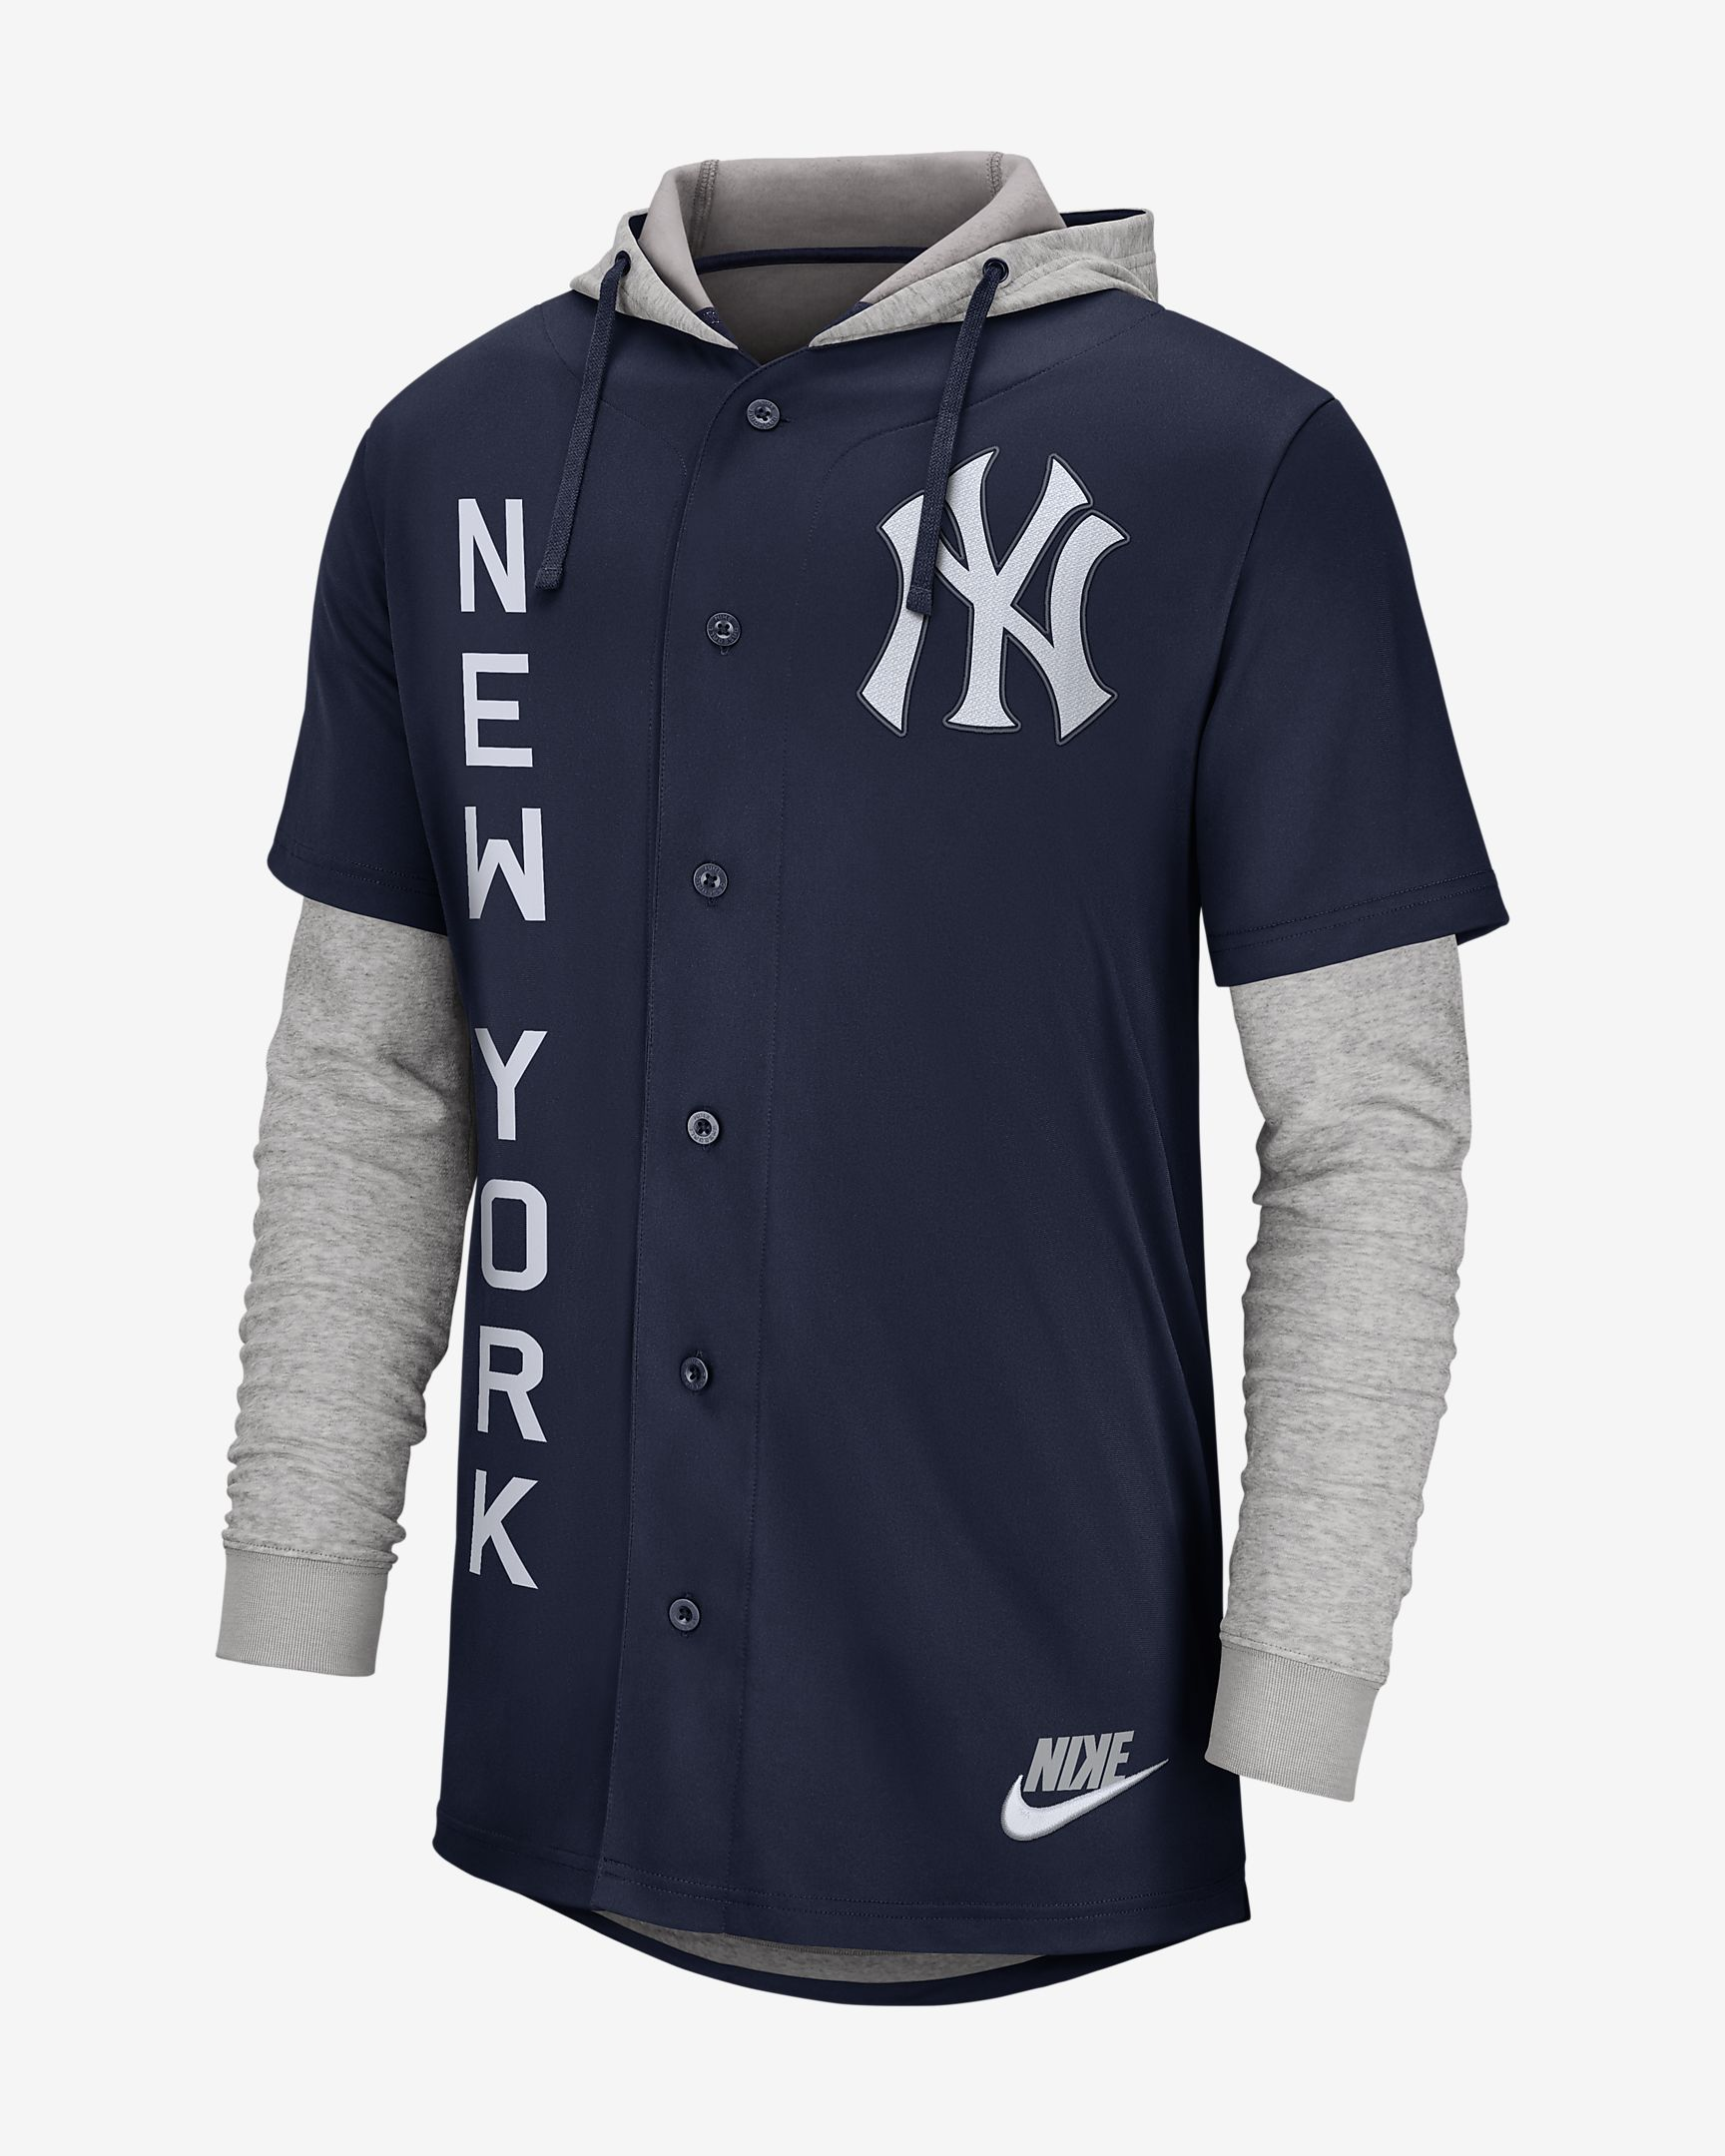 yankees-mens-hooded-baseball-jersey-kCGV